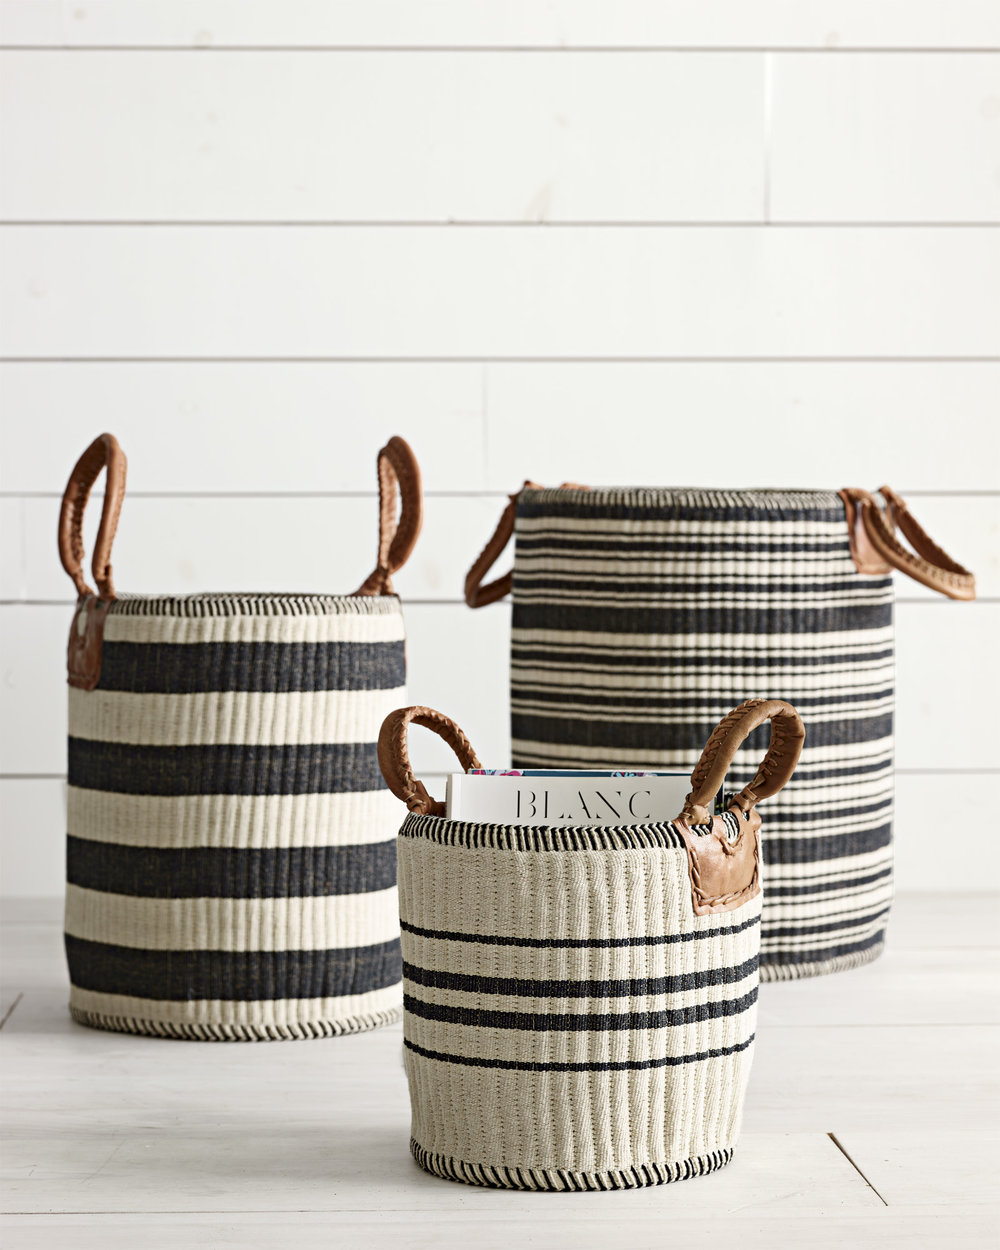 Serena & Lily, Huntington Basket in Black & Indigo